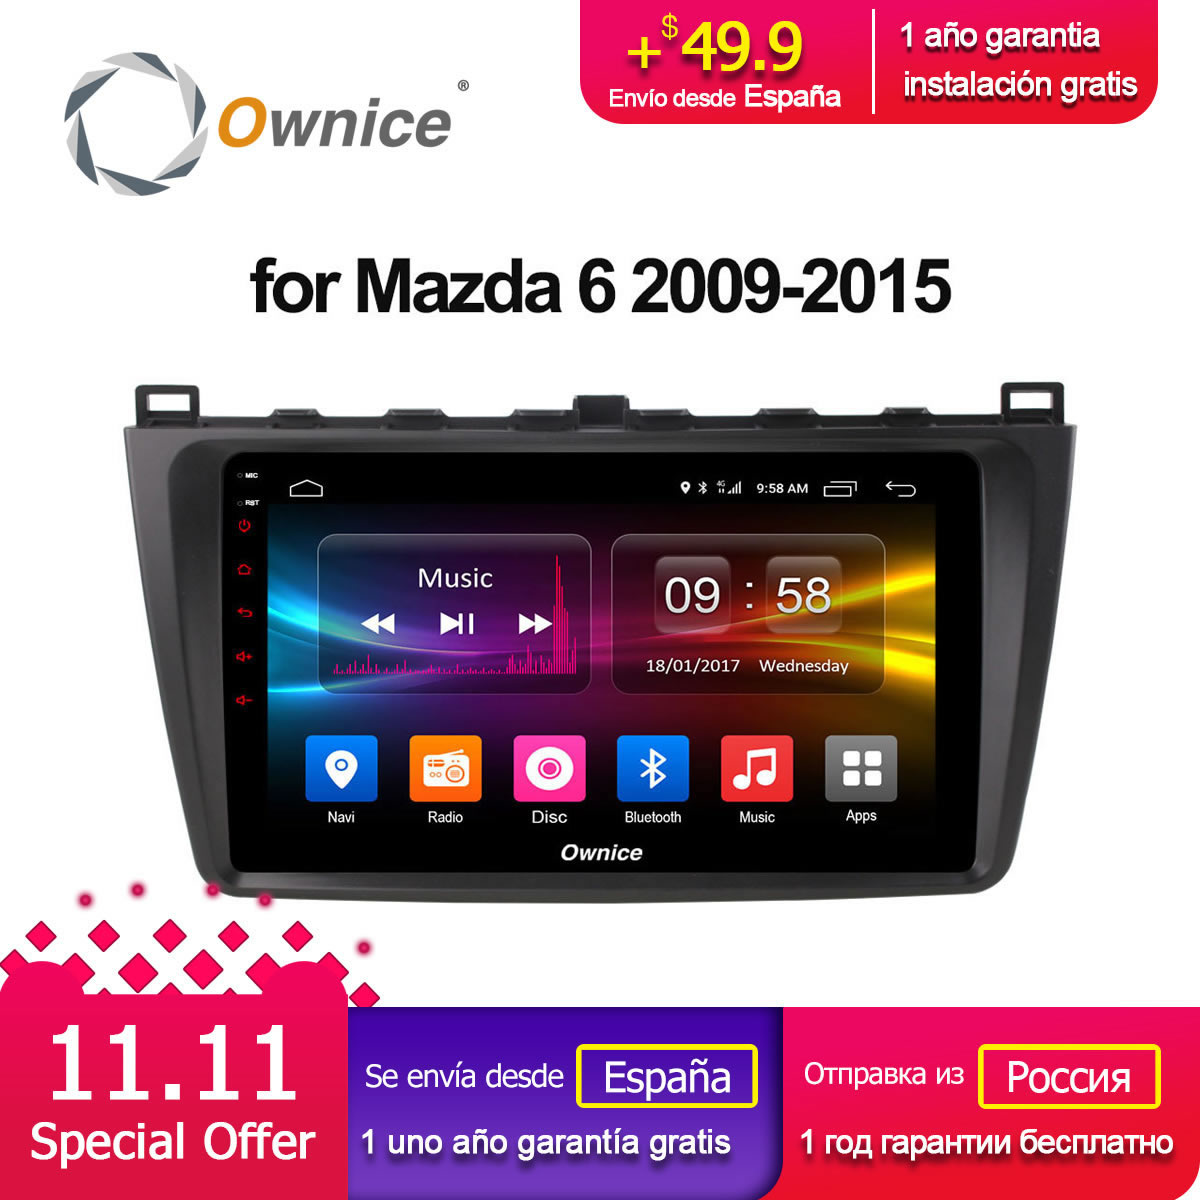 Ownice C500+ G10 Octa Core 2GB RAM 32G ROM Android car dvd 8.1 gps For Mazda 6 Summit 2009 - 2015 wifi 4G LTE Radio DAB+ DVR ownice c500 octa core android 6 0 car dvd gps for mazda 6 ruiyi ultra 2008 2009 2010 2011 2012 wifi 4g radio 2gb ram bt 32g rom